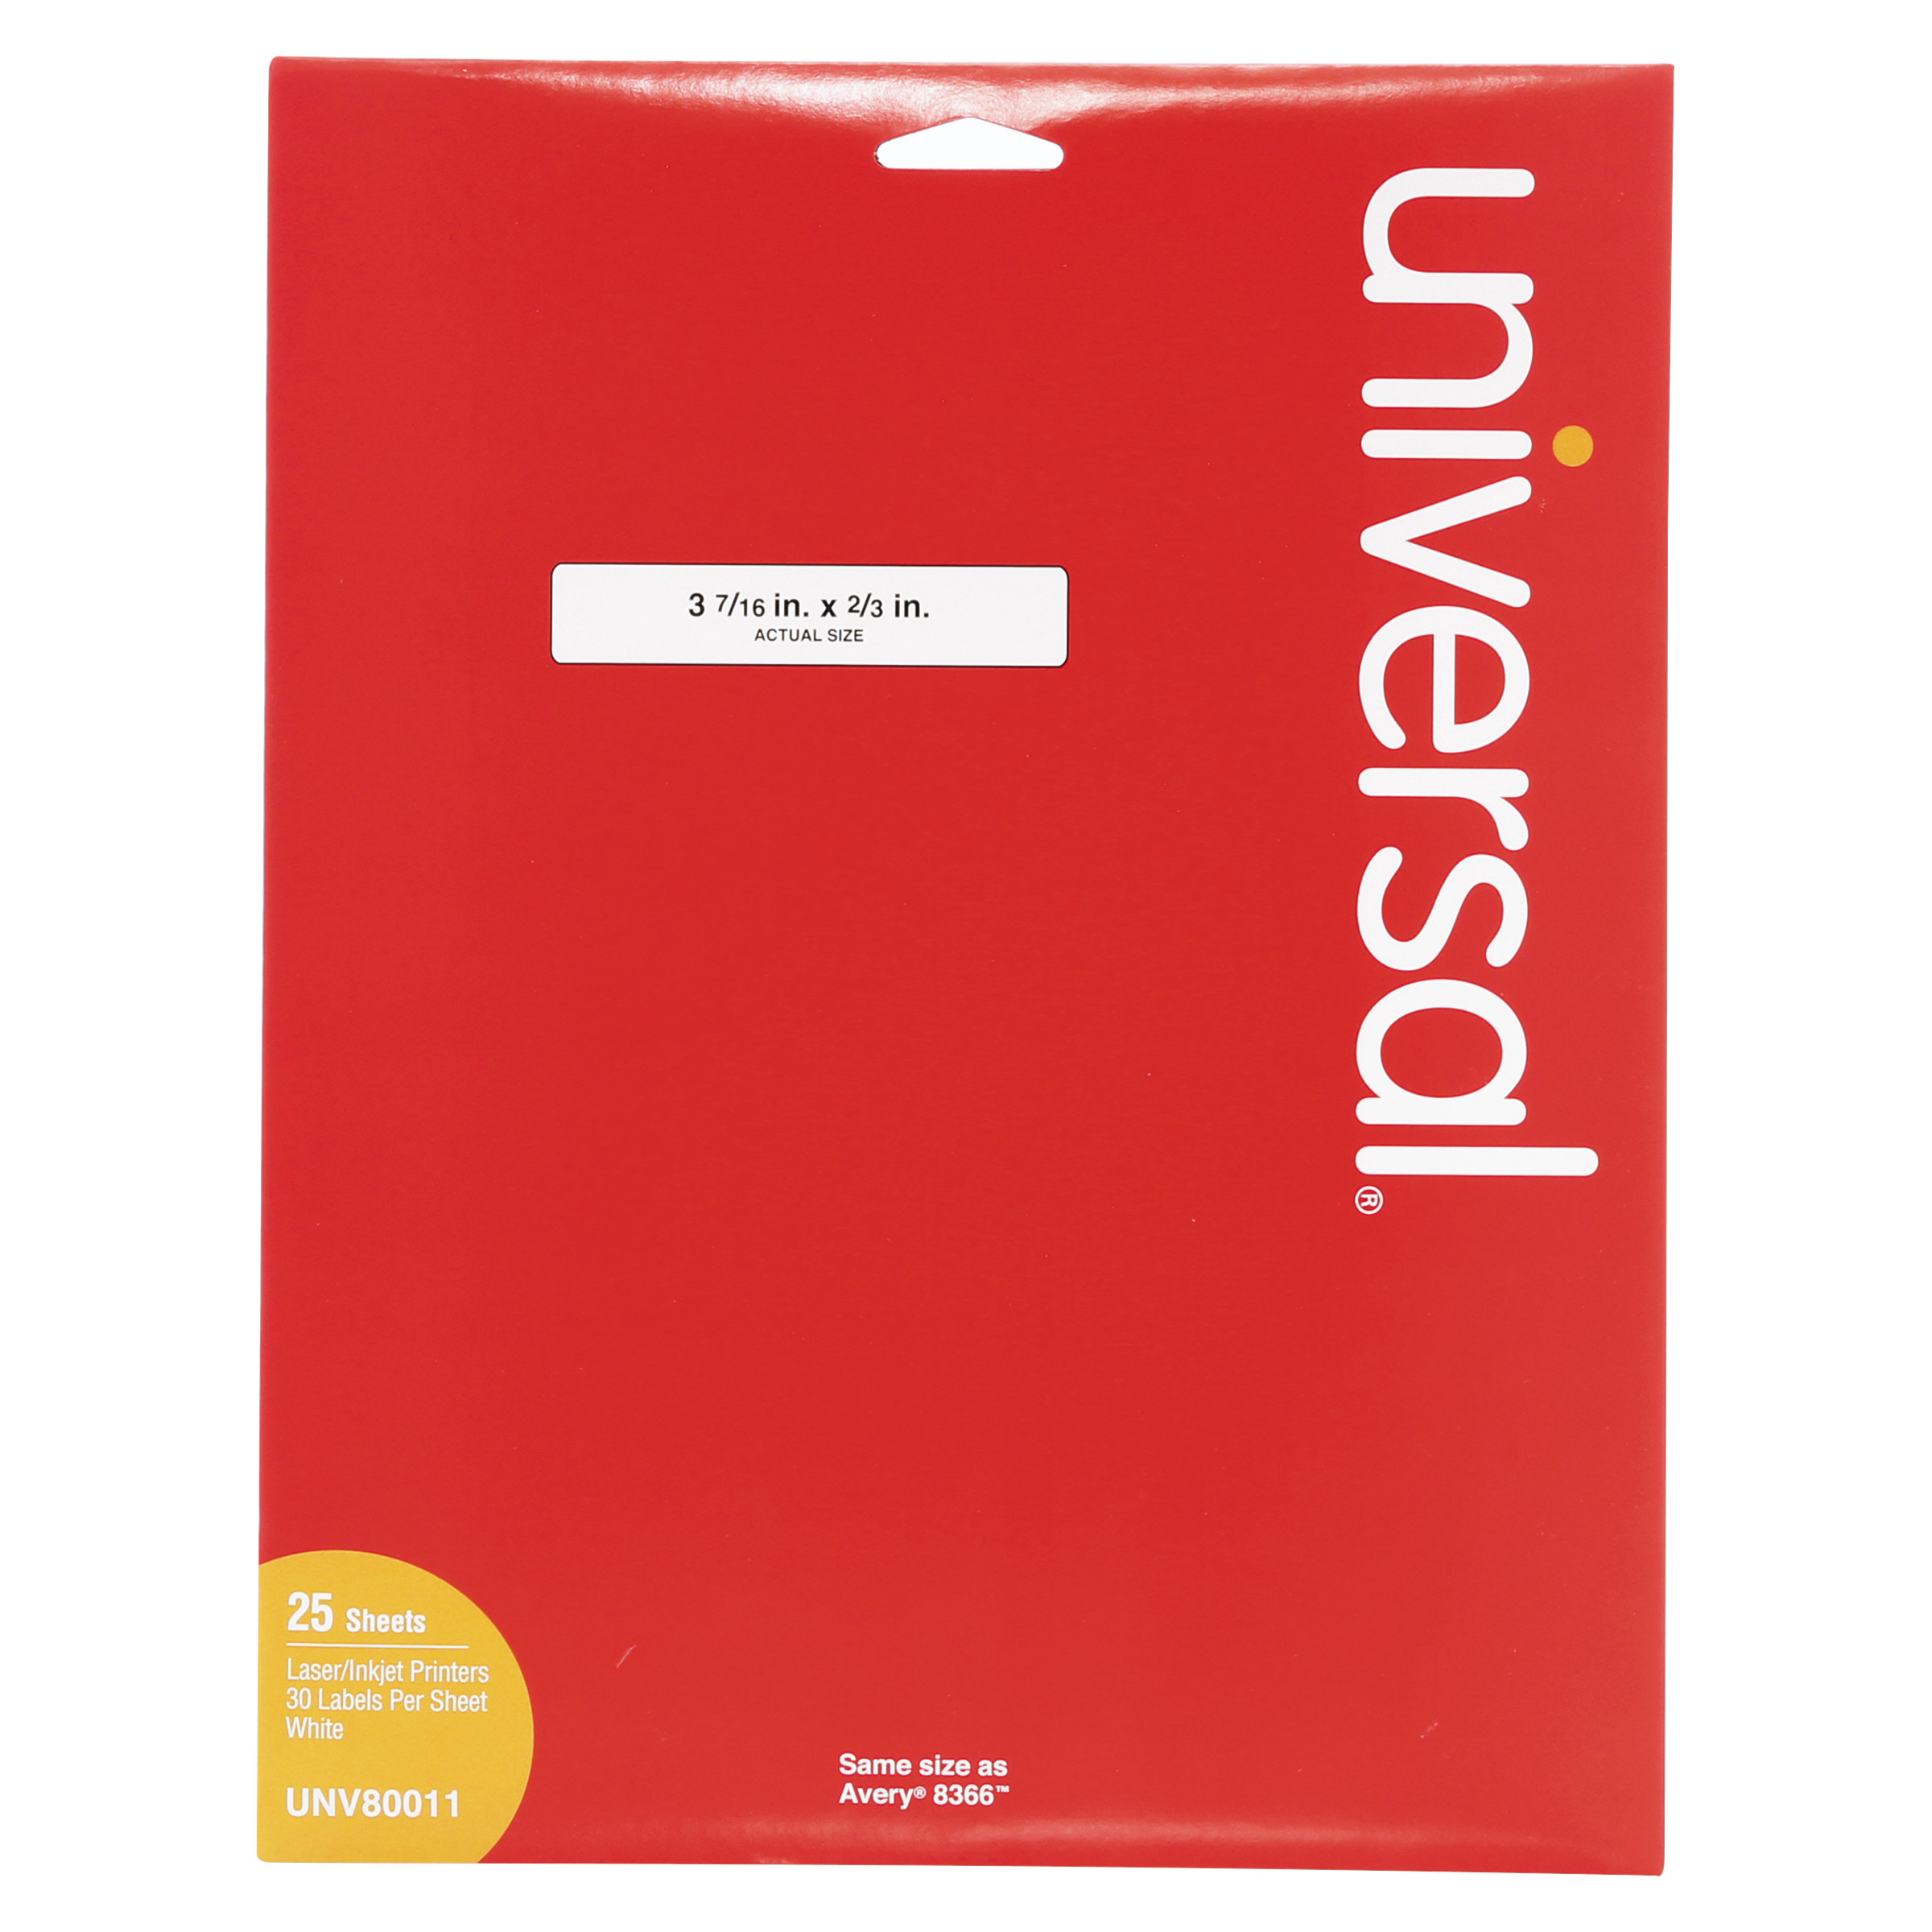 "Universal Laser Printer File Folder Labels, 3-7/16"" x 2/3"", White, 750/Box"